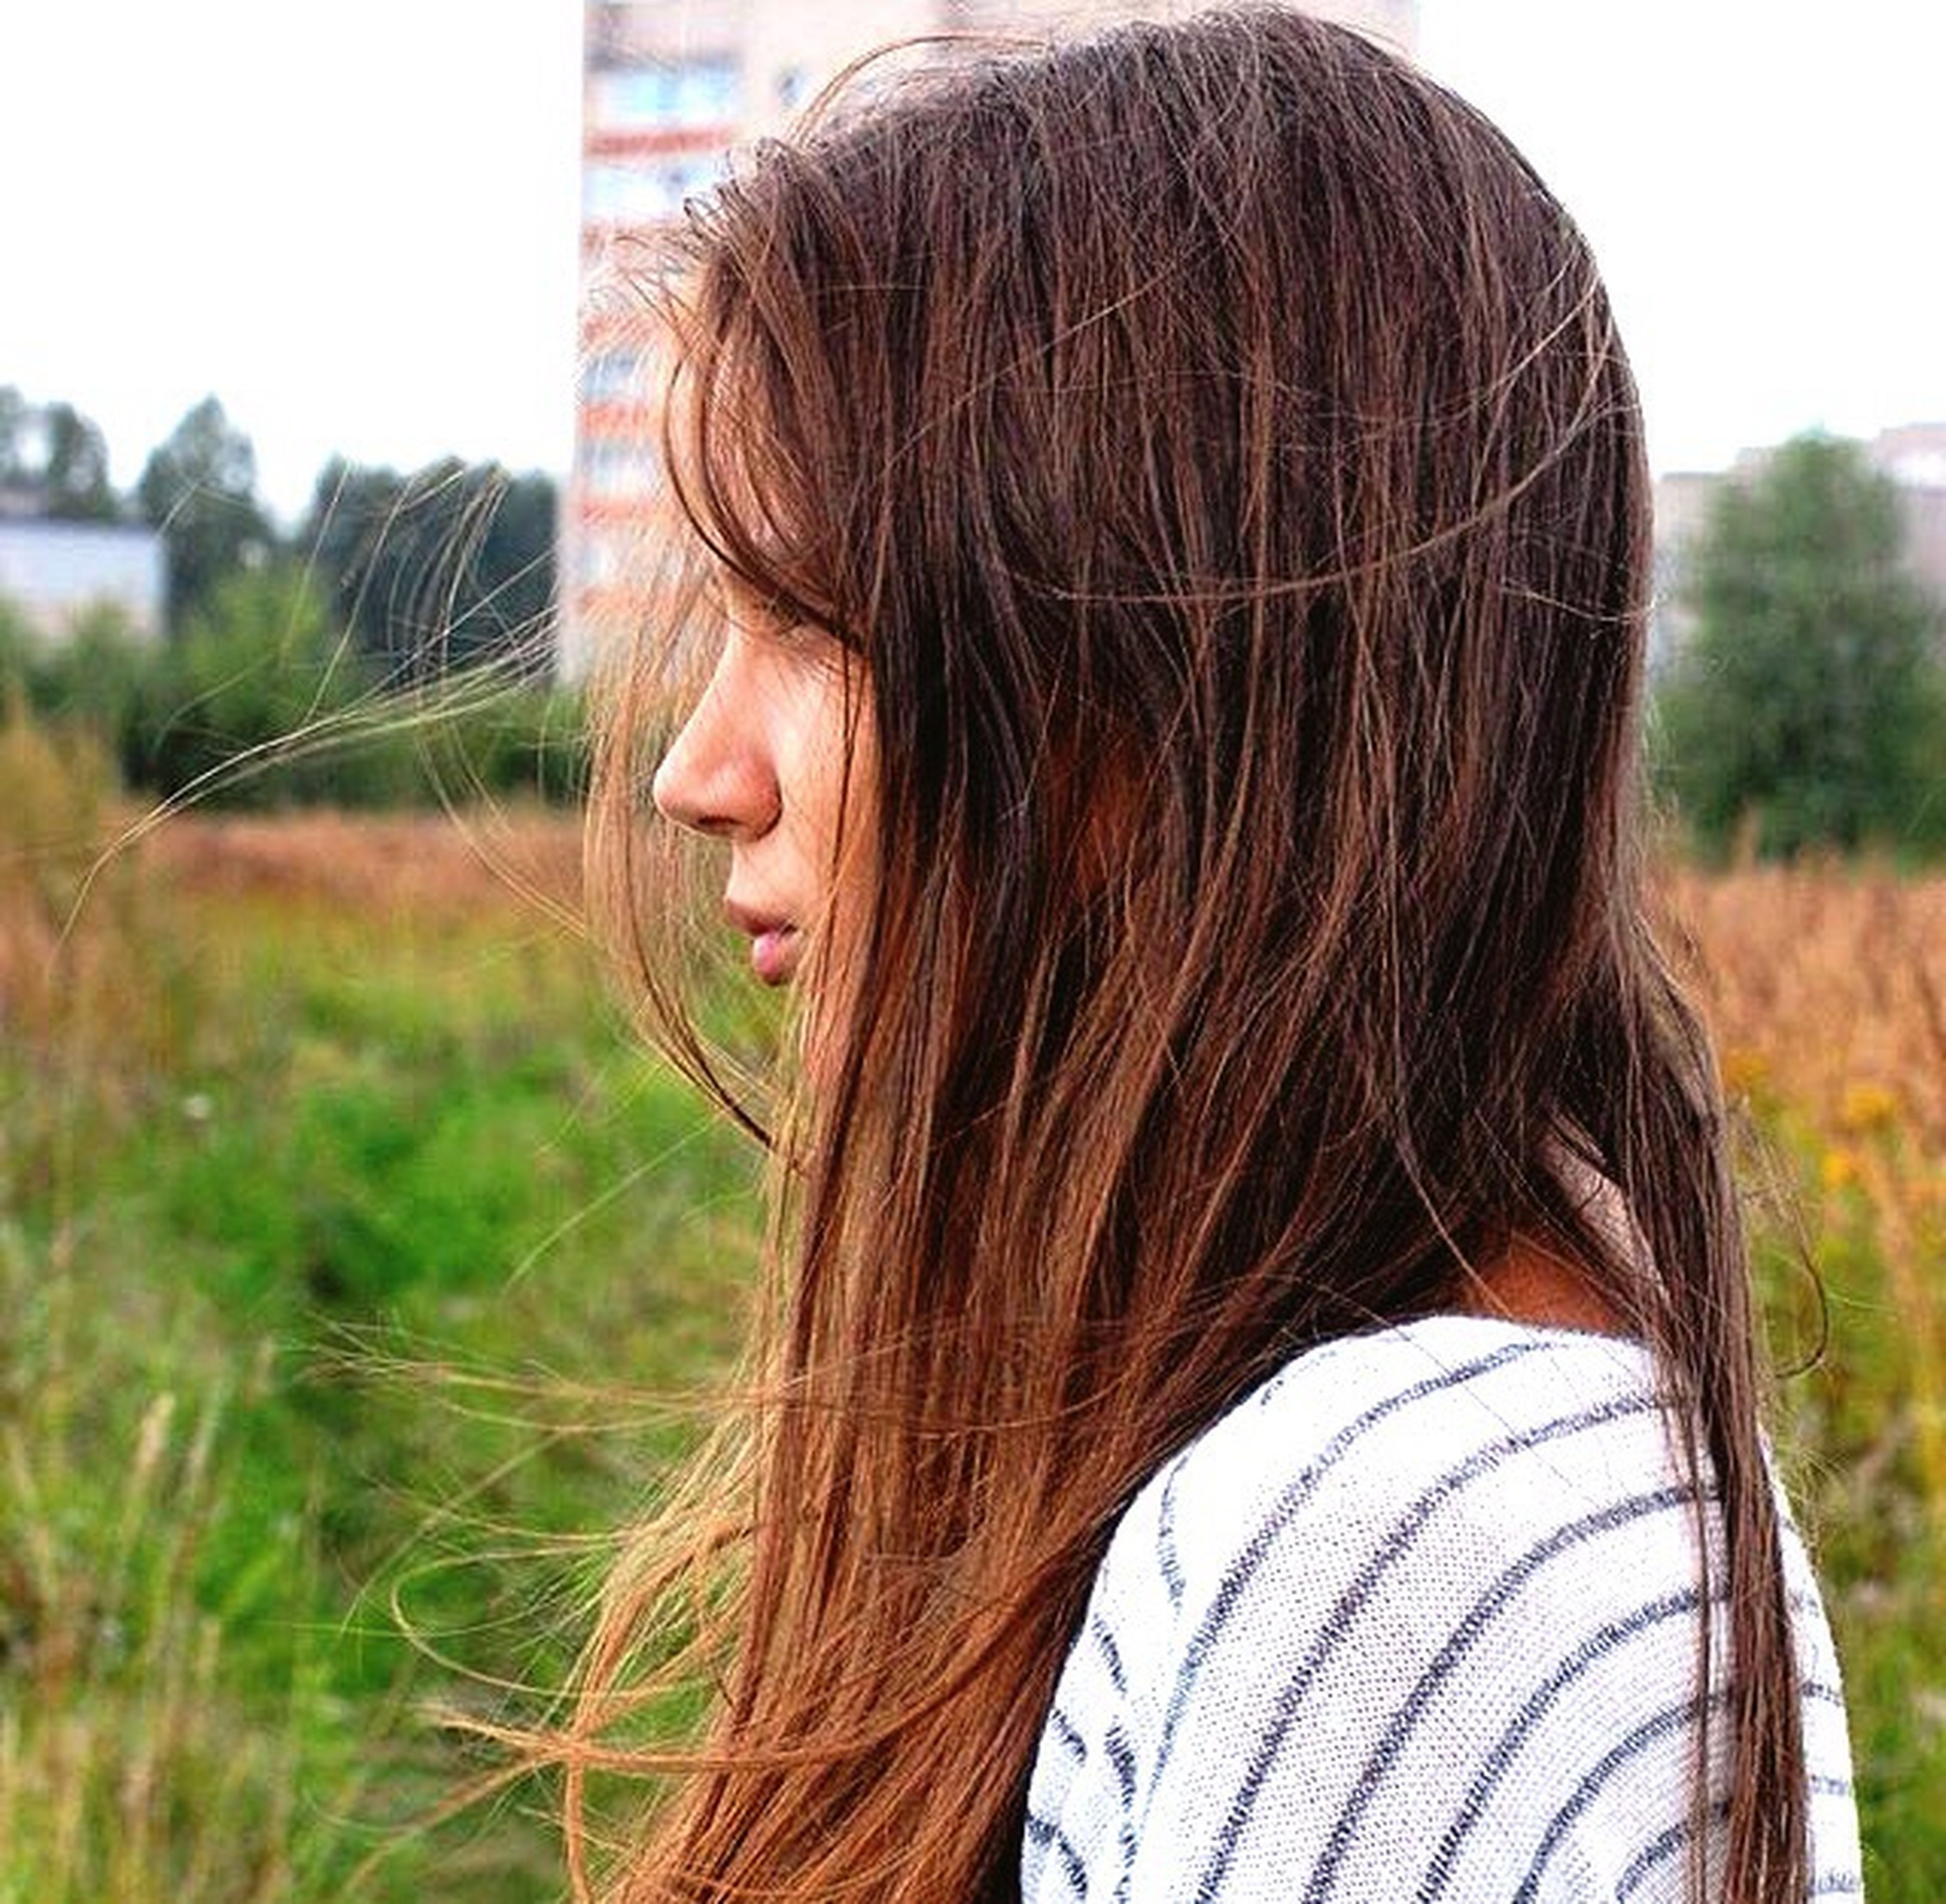 long hair, lifestyles, blond hair, person, leisure activity, focus on foreground, rear view, brown hair, young women, waist up, standing, casual clothing, headshot, childhood, young adult, field, human hair, elementary age